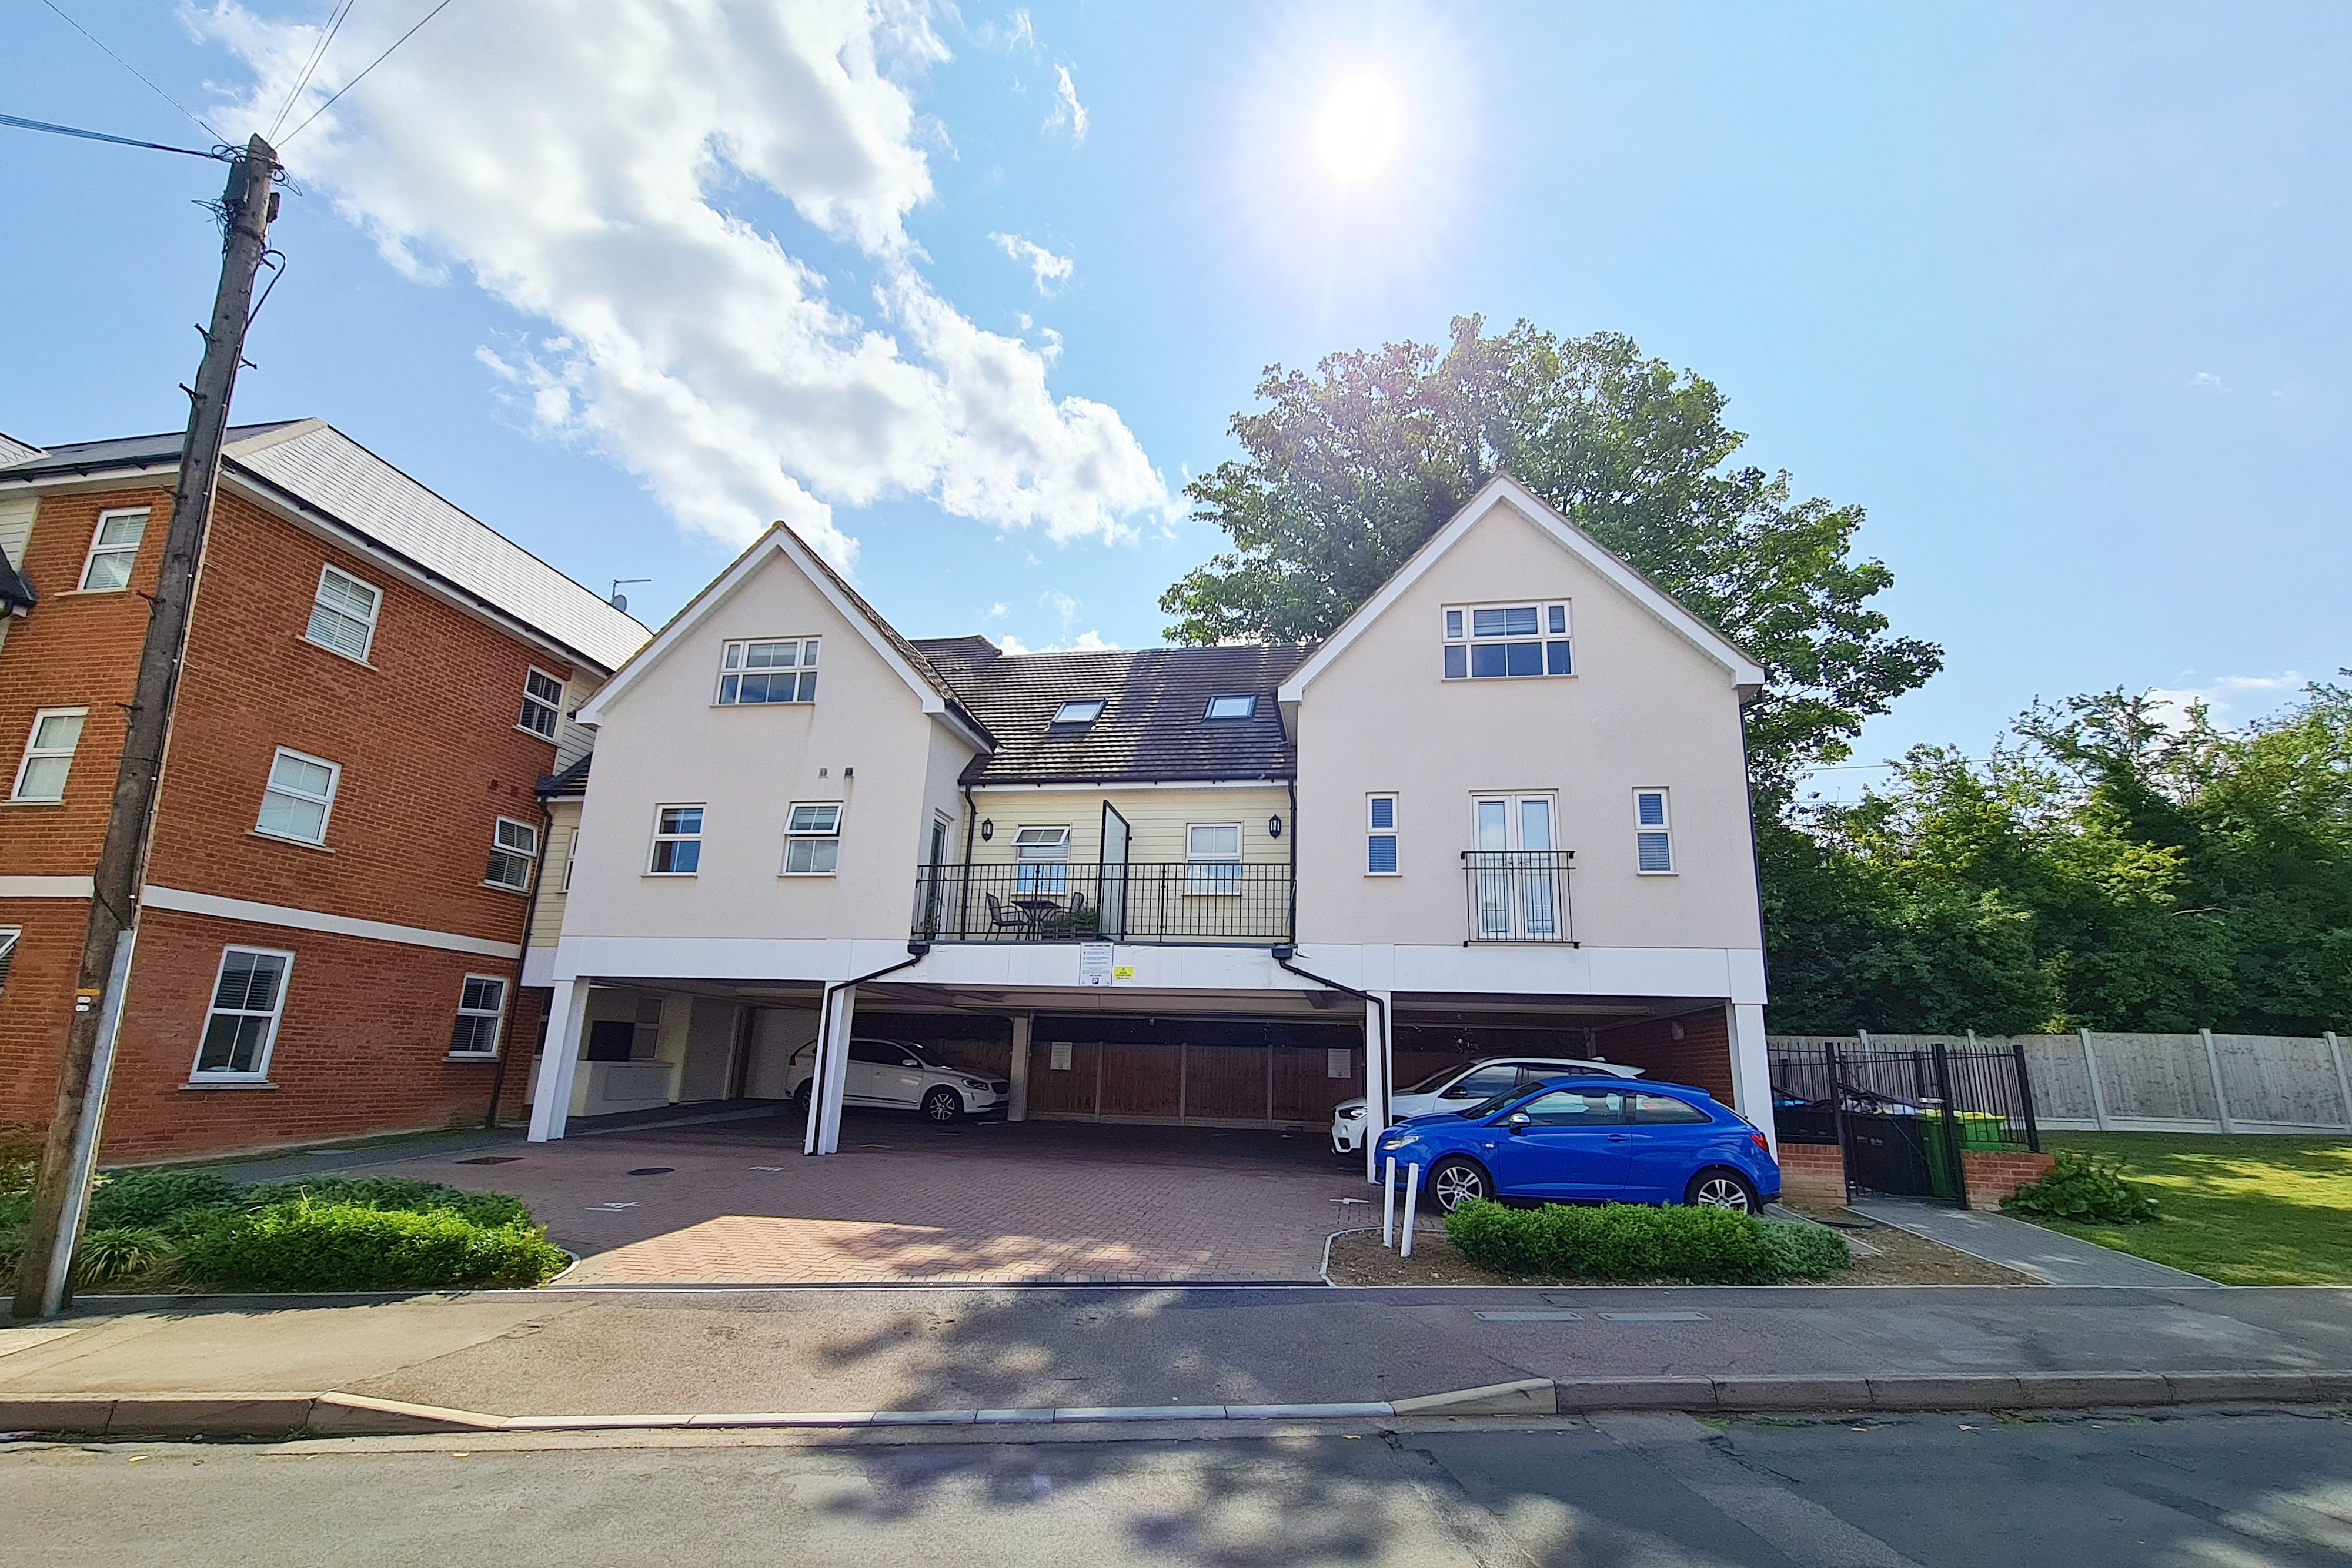 2 bed flat for sale in City Approach, Rayleigh, SS6